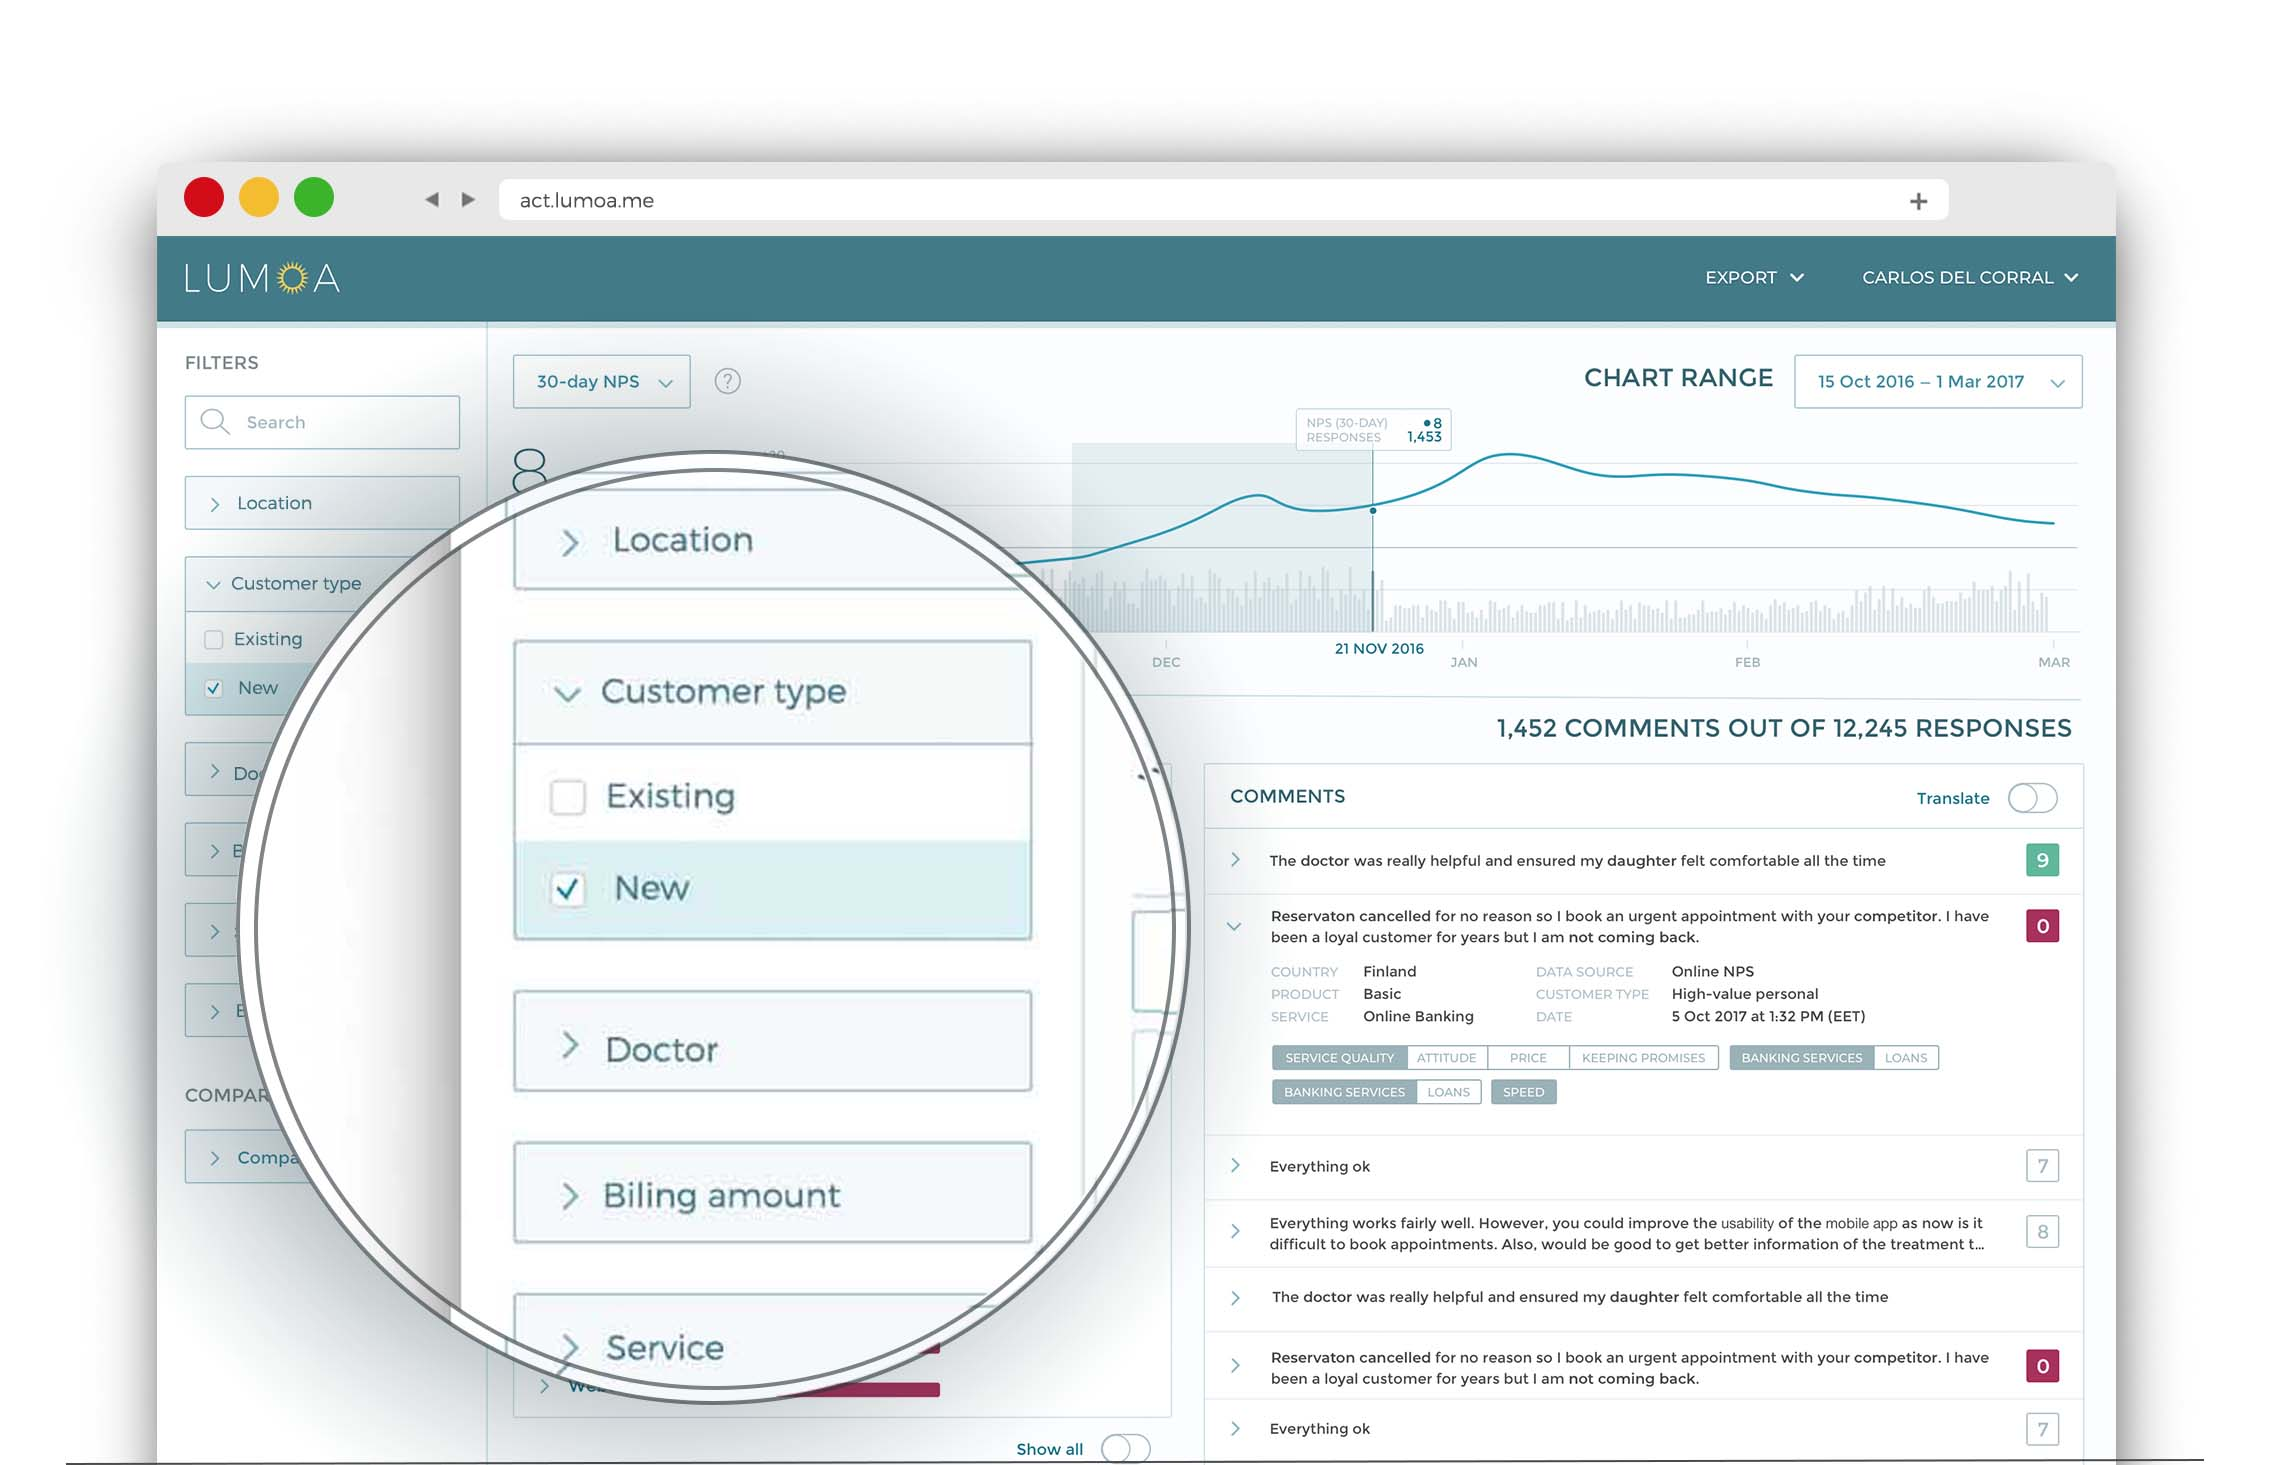 Cegment your customer feedback with the filters of your choice